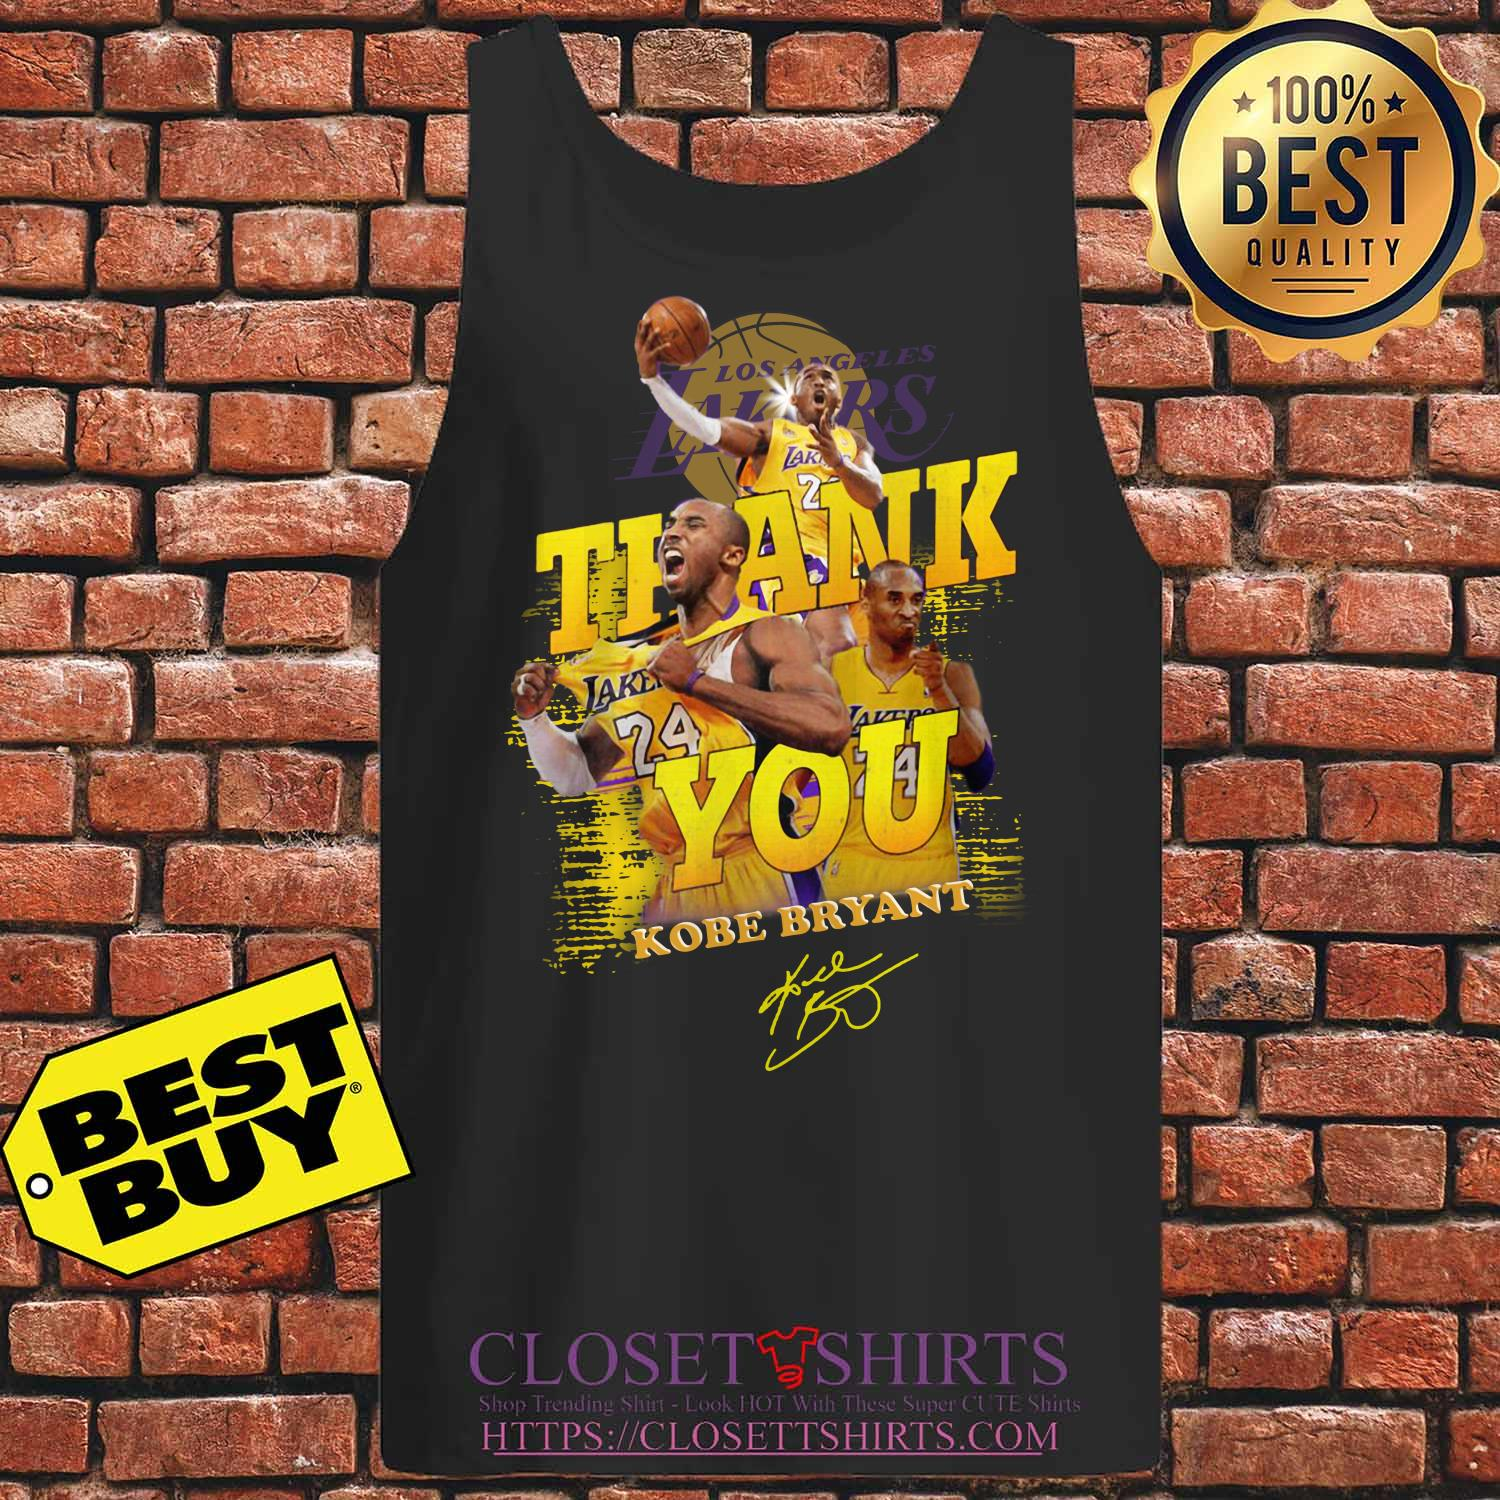 Thank You #24 Kobe Bryant Los Angeles Lakers Signature tank top.